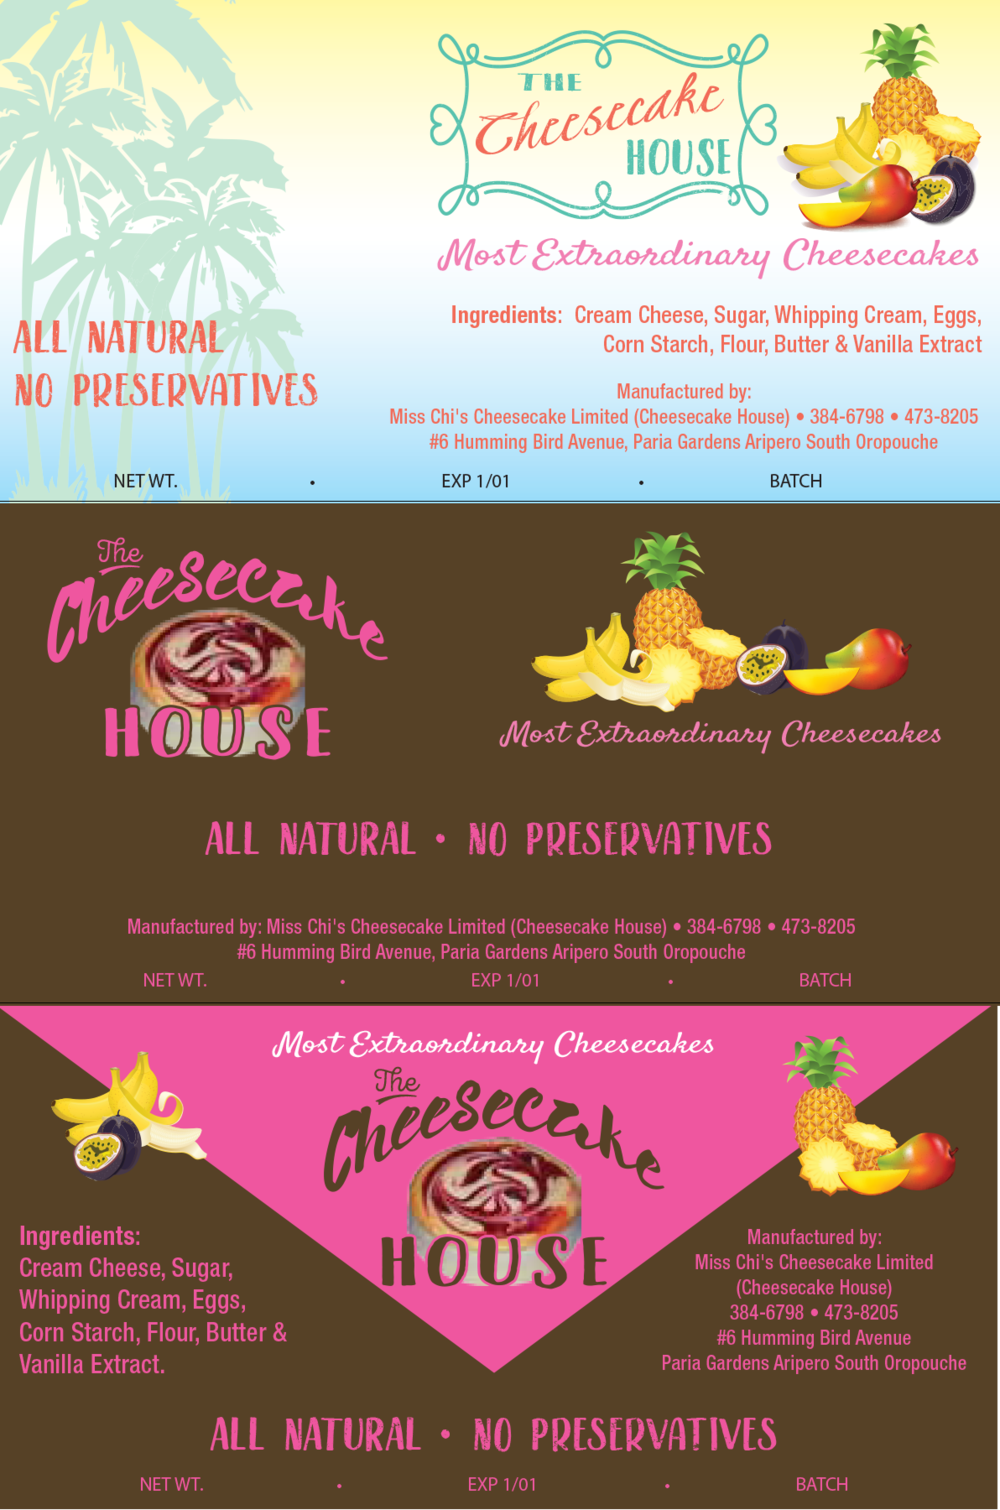 Cheesecake House Labels - This project was for retail cheesecakes labels. The client was very flexible with designs. They didn't really have a logo so I designed a couple different options to go with the labels. The labels were done to have a Caribbean feel to them. They were designed using Adobe Illustrator CC and are completely vectorized.